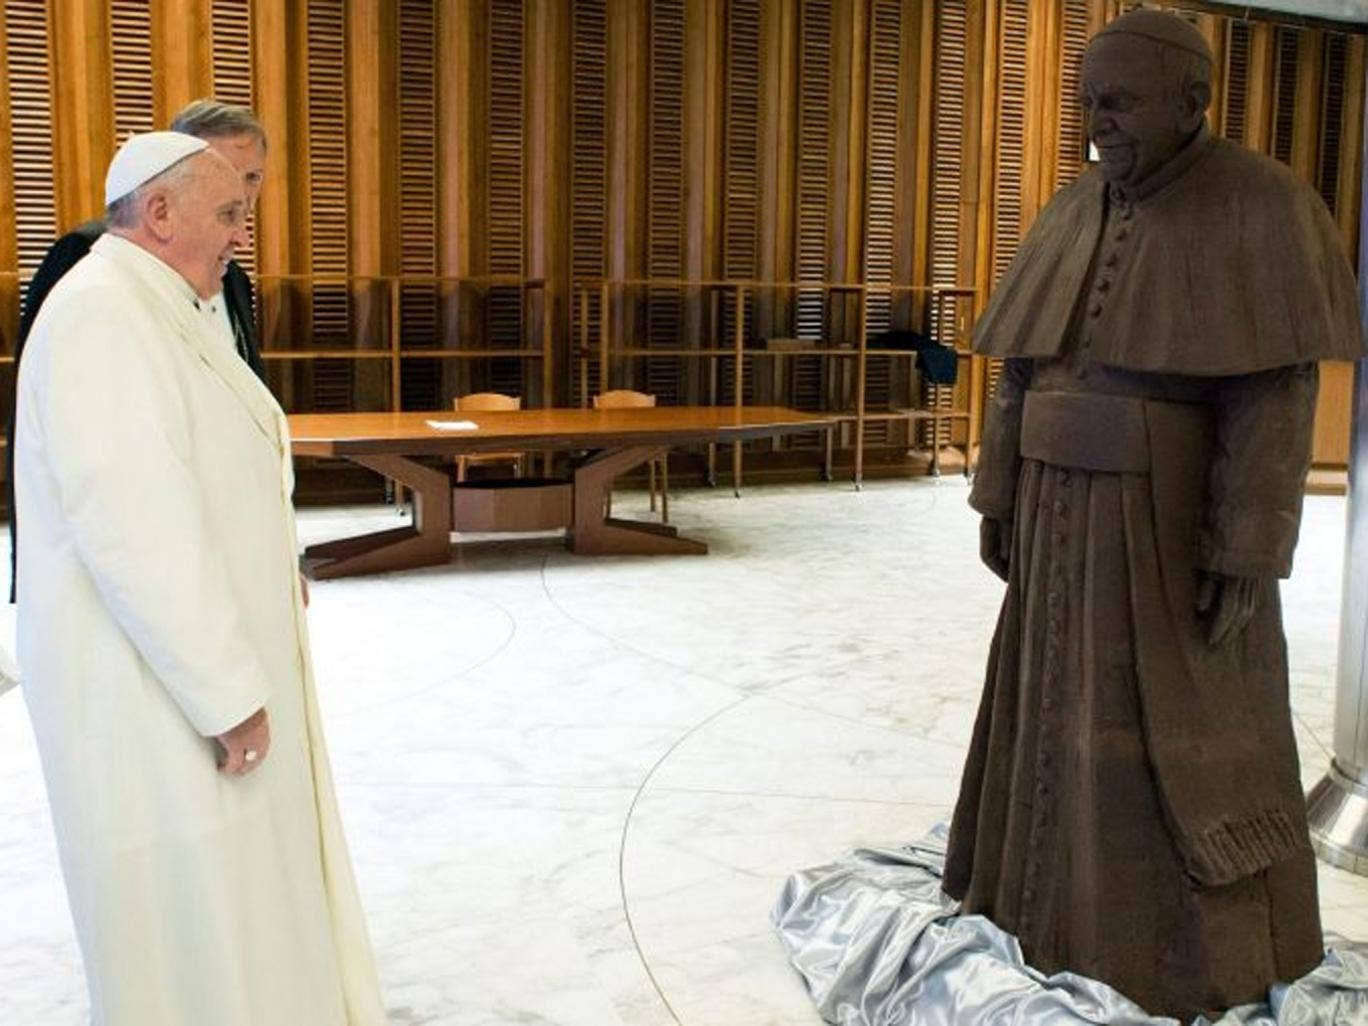 Pope Francis stands in front of a chocolate statue of him in Vatican City, Vatican, 05 February.